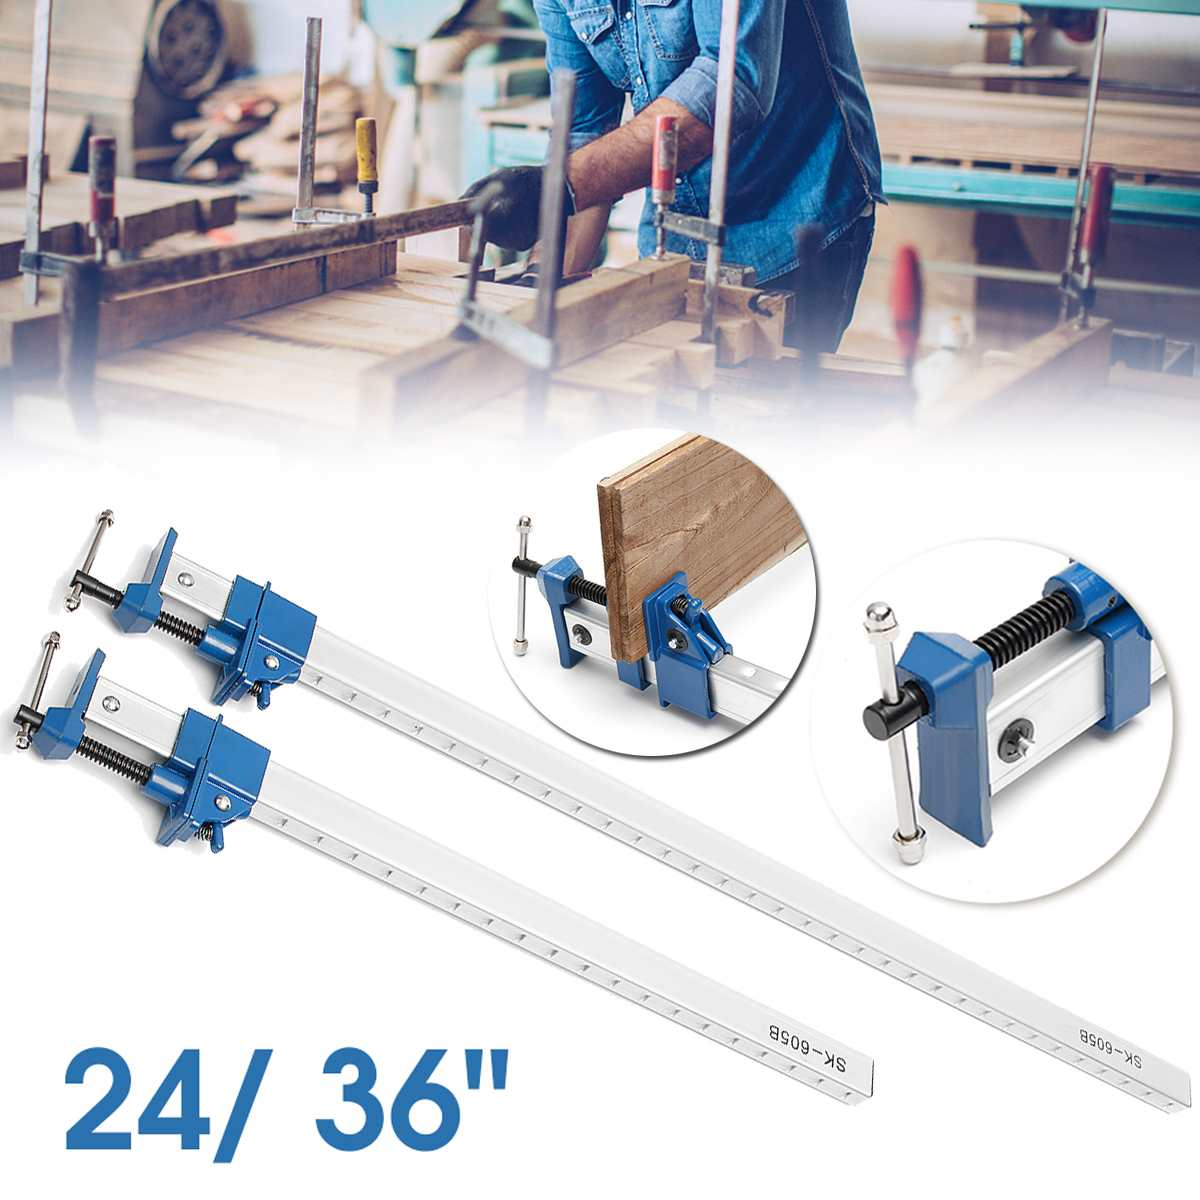 24/36 Inch DIY Heavy   F Clamp T Bar Wood Clamps for Woodworking Quick Release Fixture Sash Long Cramp Bench Wood Grip24/36 Inch DIY Heavy   F Clamp T Bar Wood Clamps for Woodworking Quick Release Fixture Sash Long Cramp Bench Wood Grip